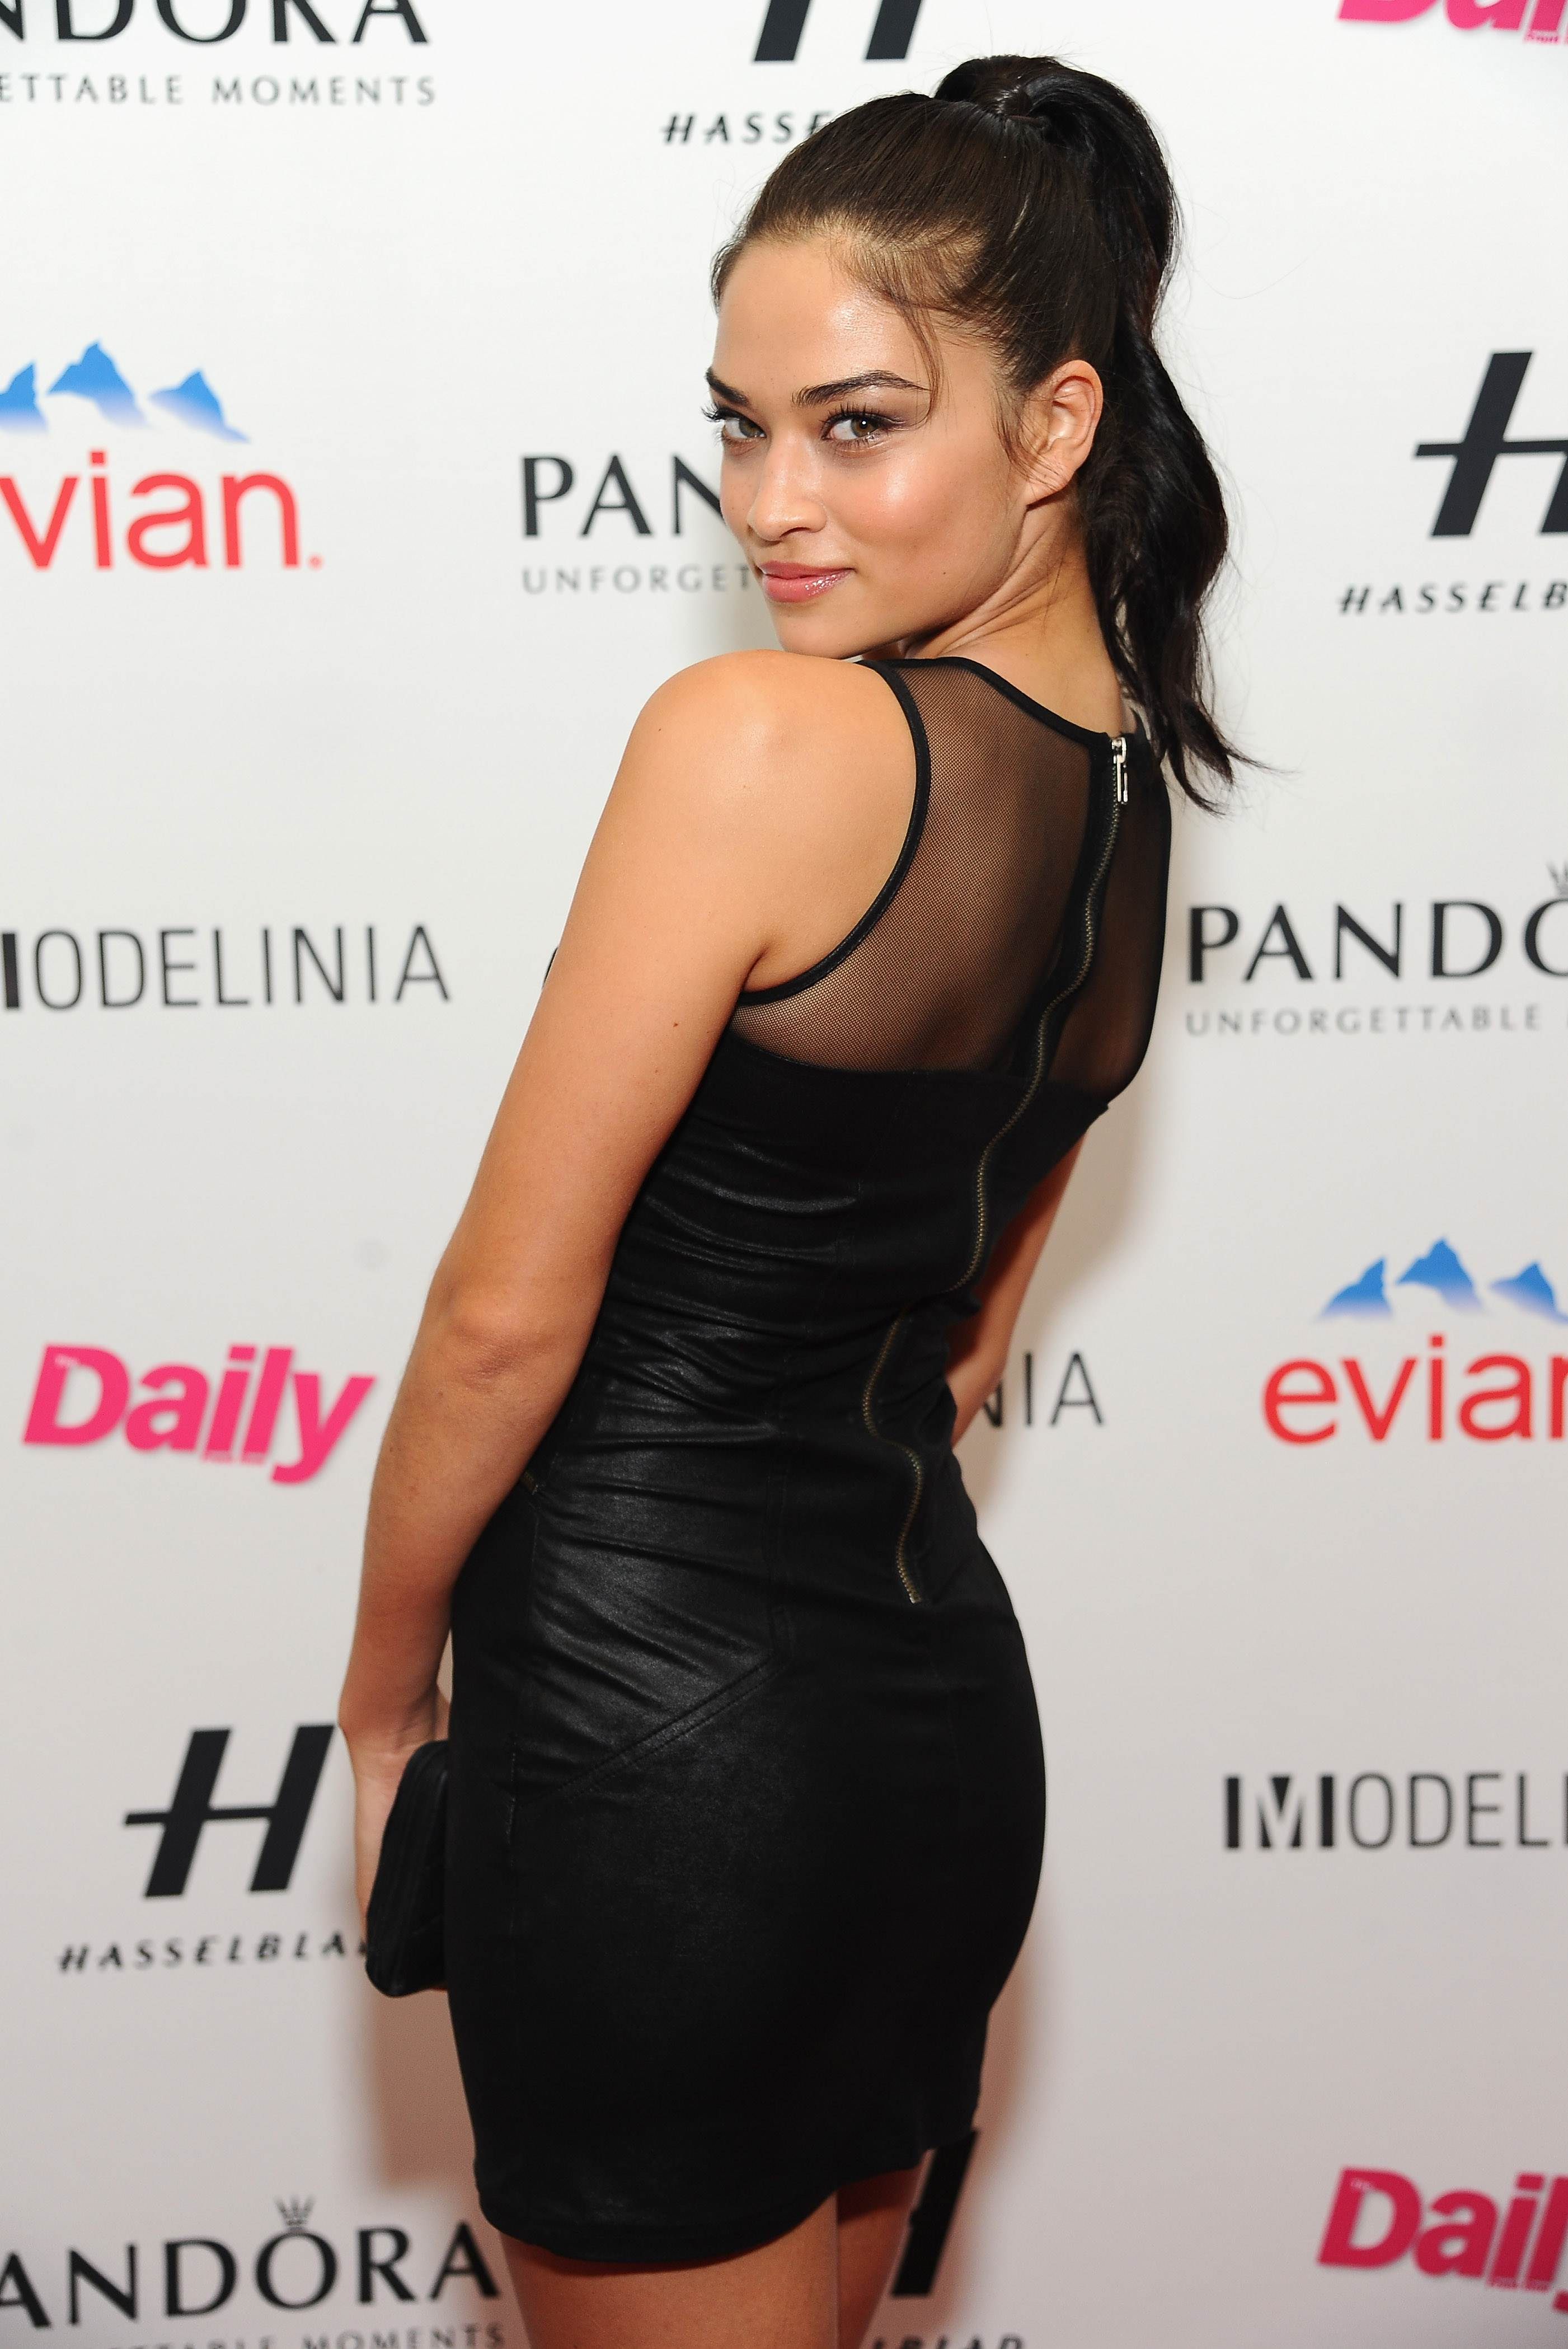 Shanina Shaik Archive  SAWFIRST  Hot Celebrity Pictures